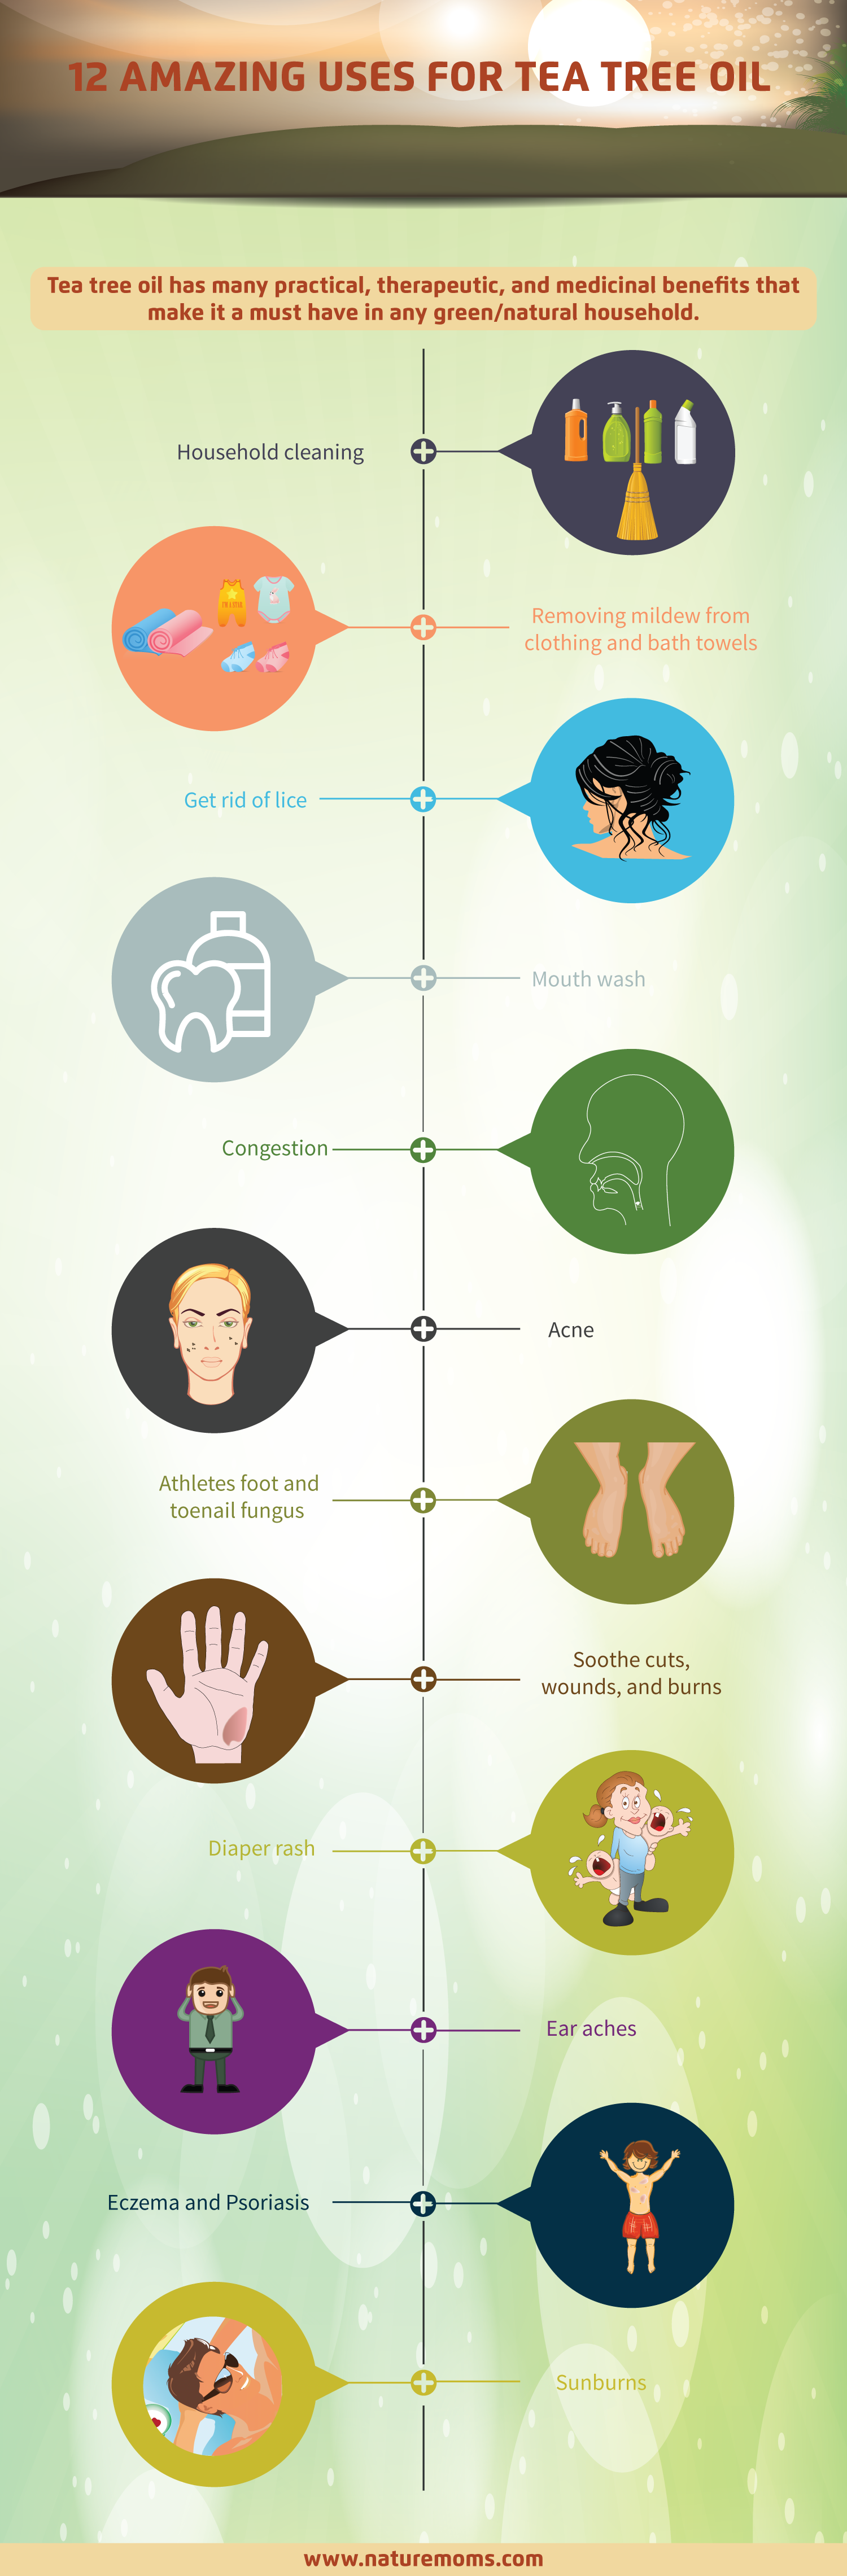 12 Uses for Tea Tree Oil